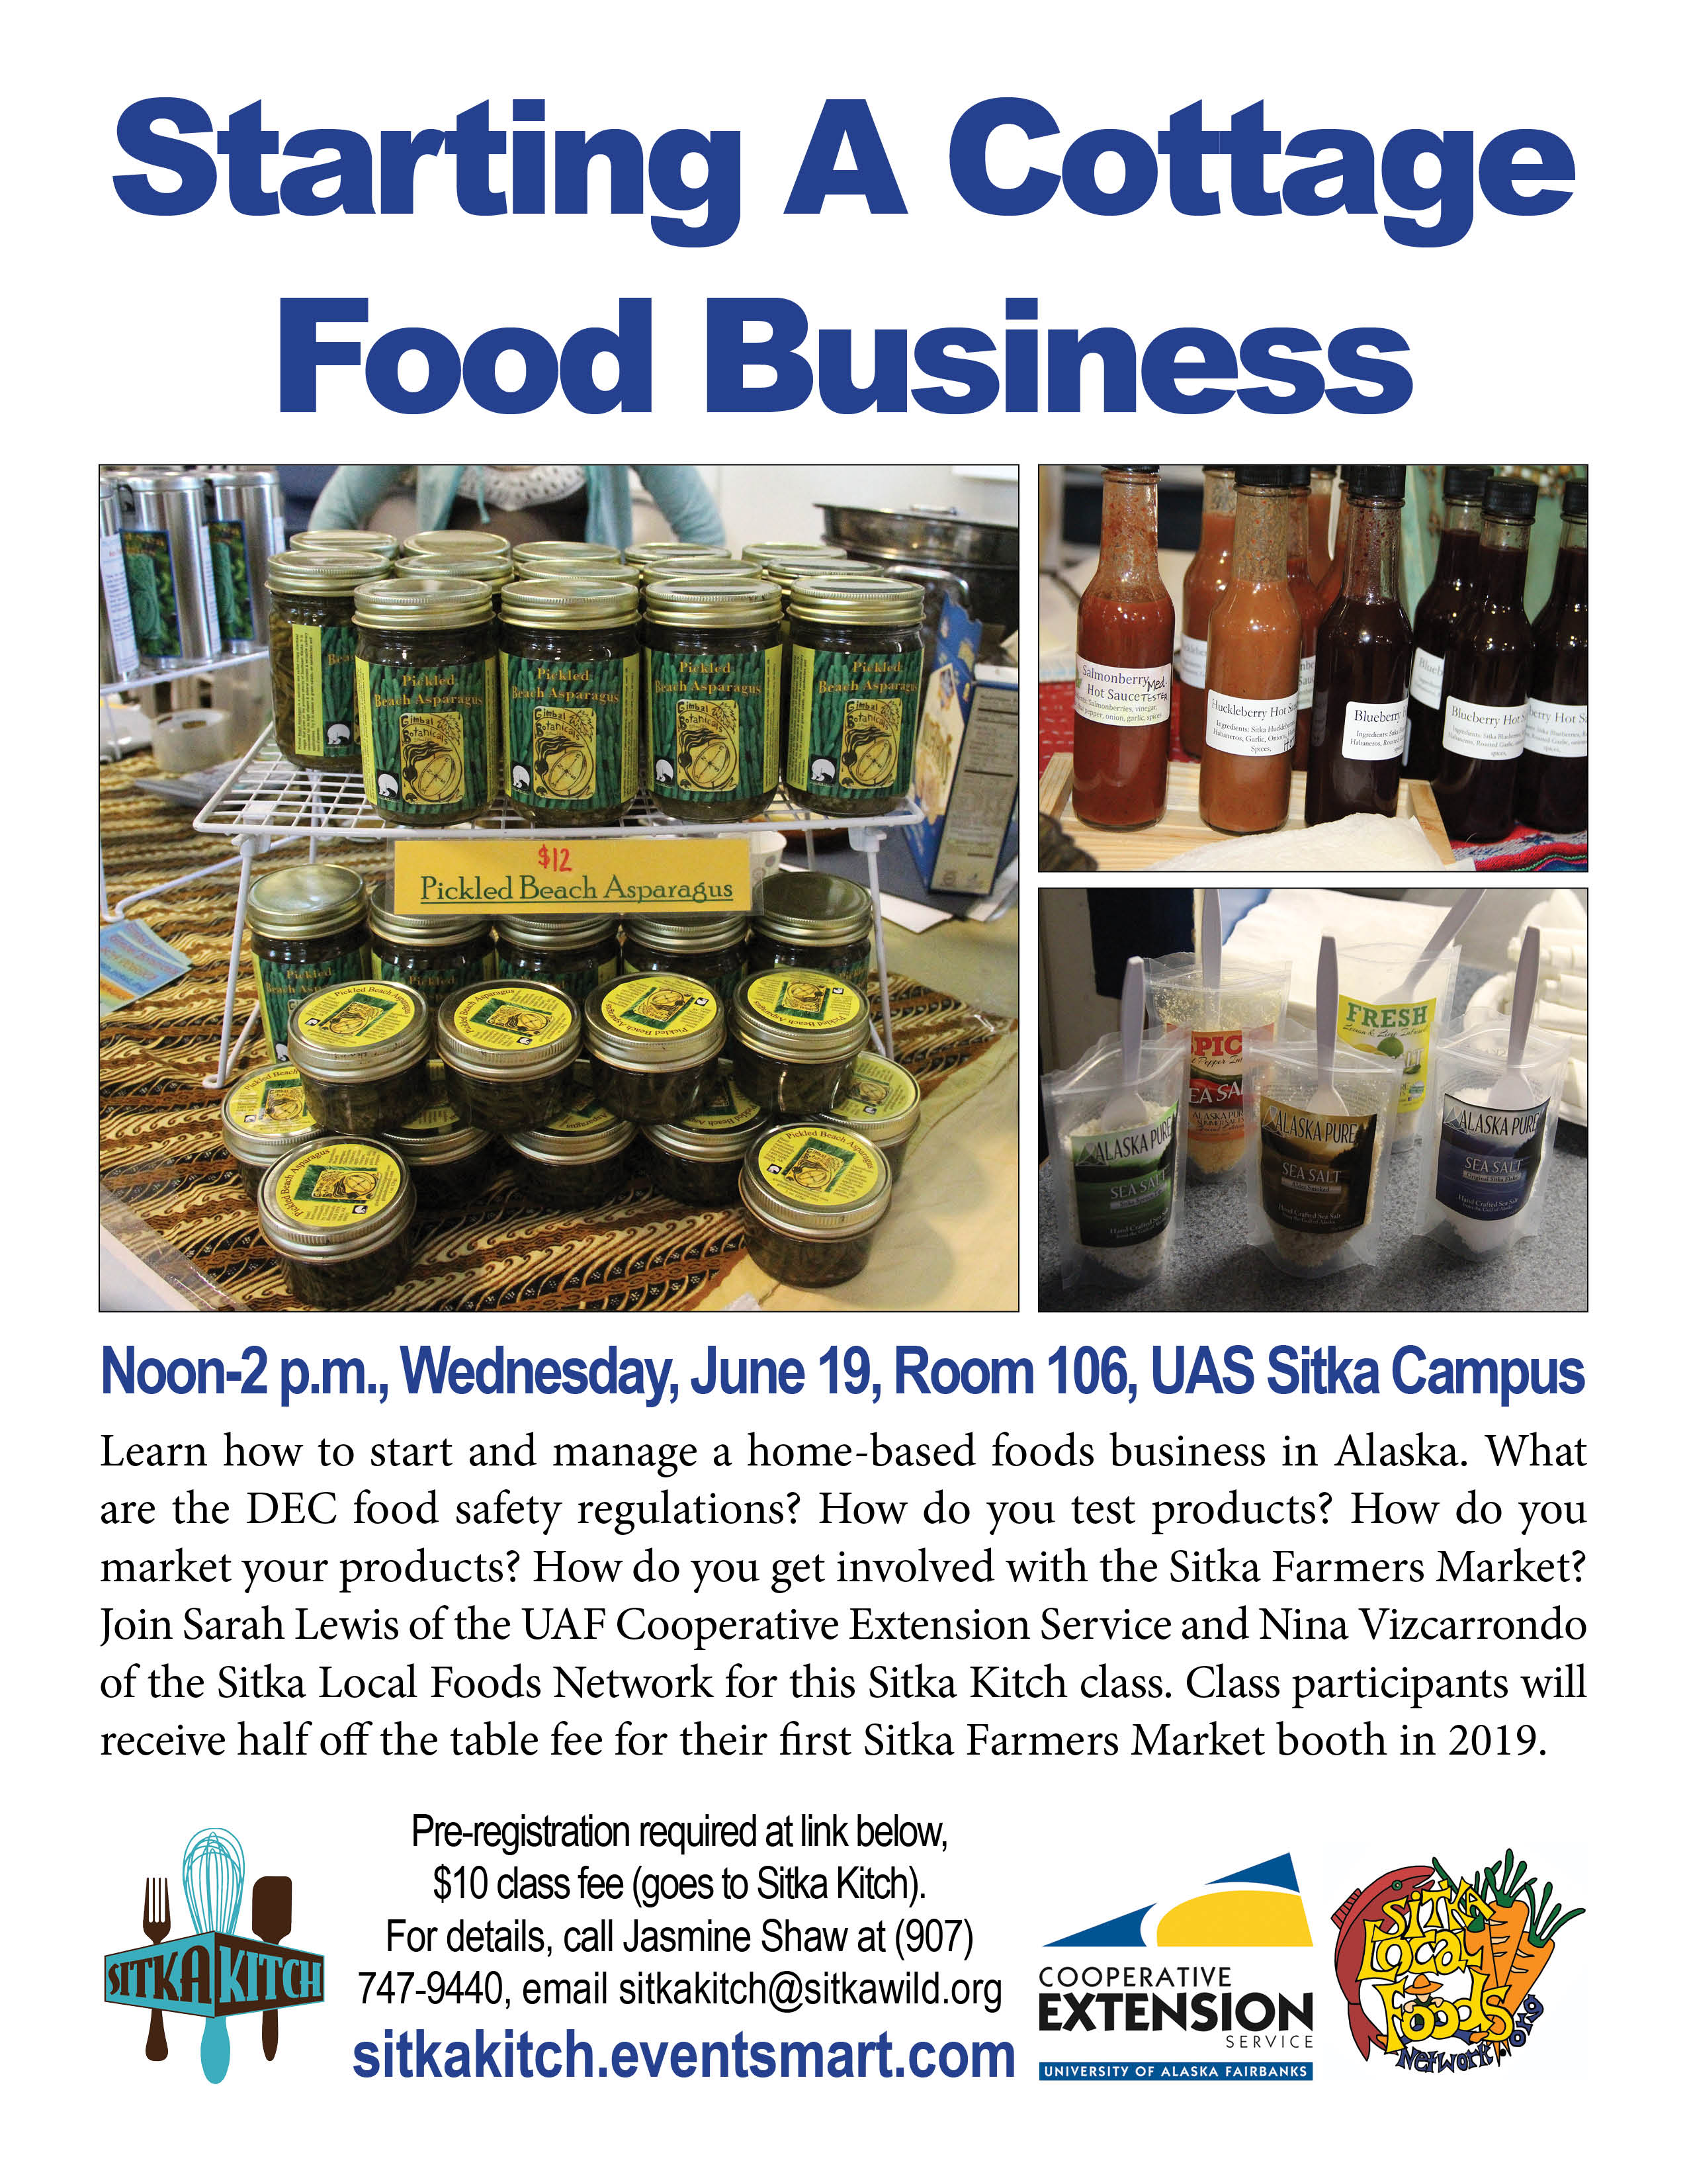 Sitka Kitch To Host Starting A Cottage Foods Business Class June 19 At Uas Sitka Campus Sitka Local Foods Network